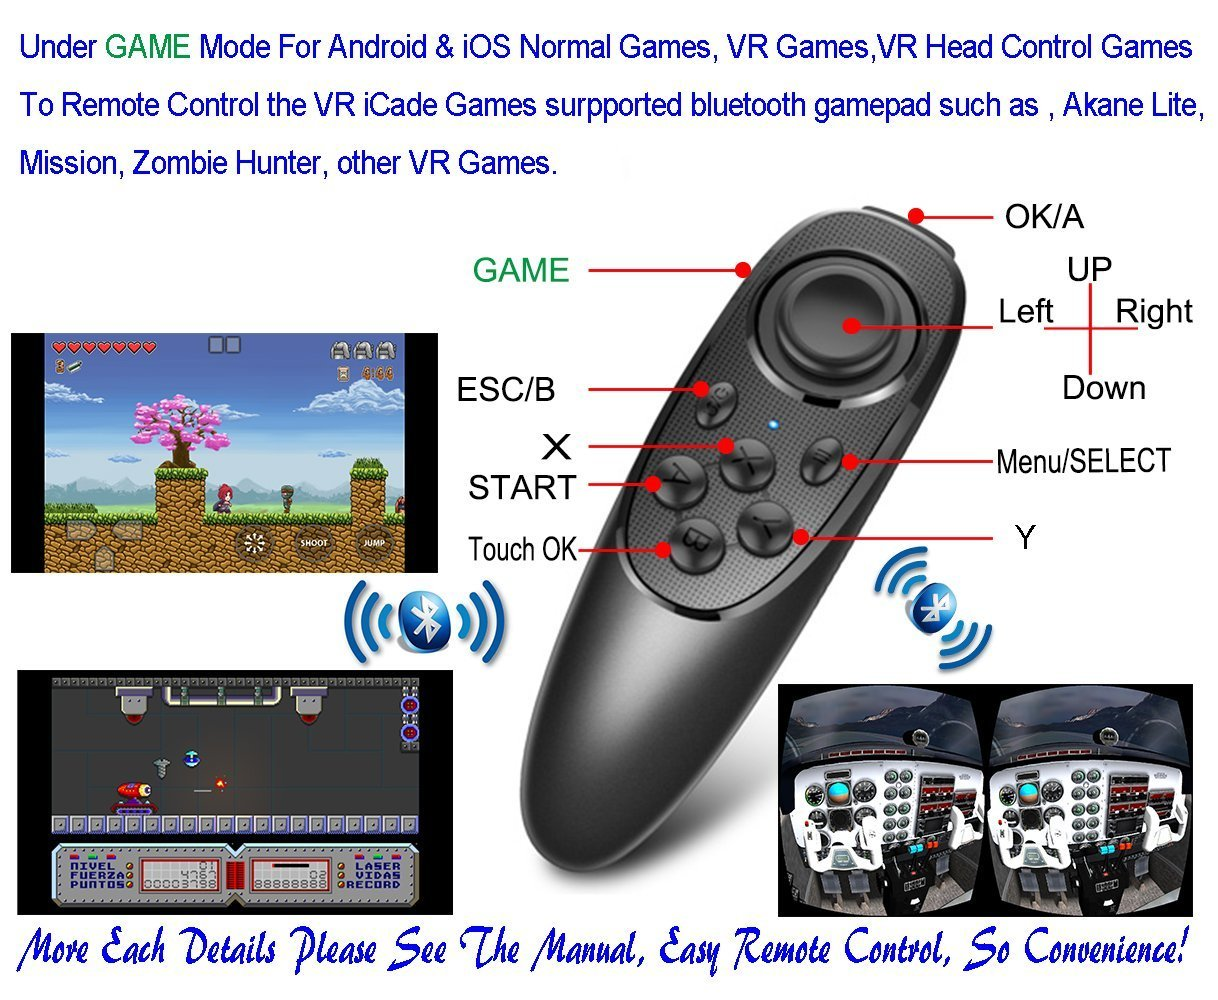 VR Remote Controller Gamepad Bluetooth Control VR Video, Film, Game, Selfie, Flip E-book/PPT/Nook page, Mouse, in Virtual Reality Headset 3D Glasses PC Tablet laptop Samsung Gear VR iPhone Smart Phone by VR EMPIRE (Image #2)